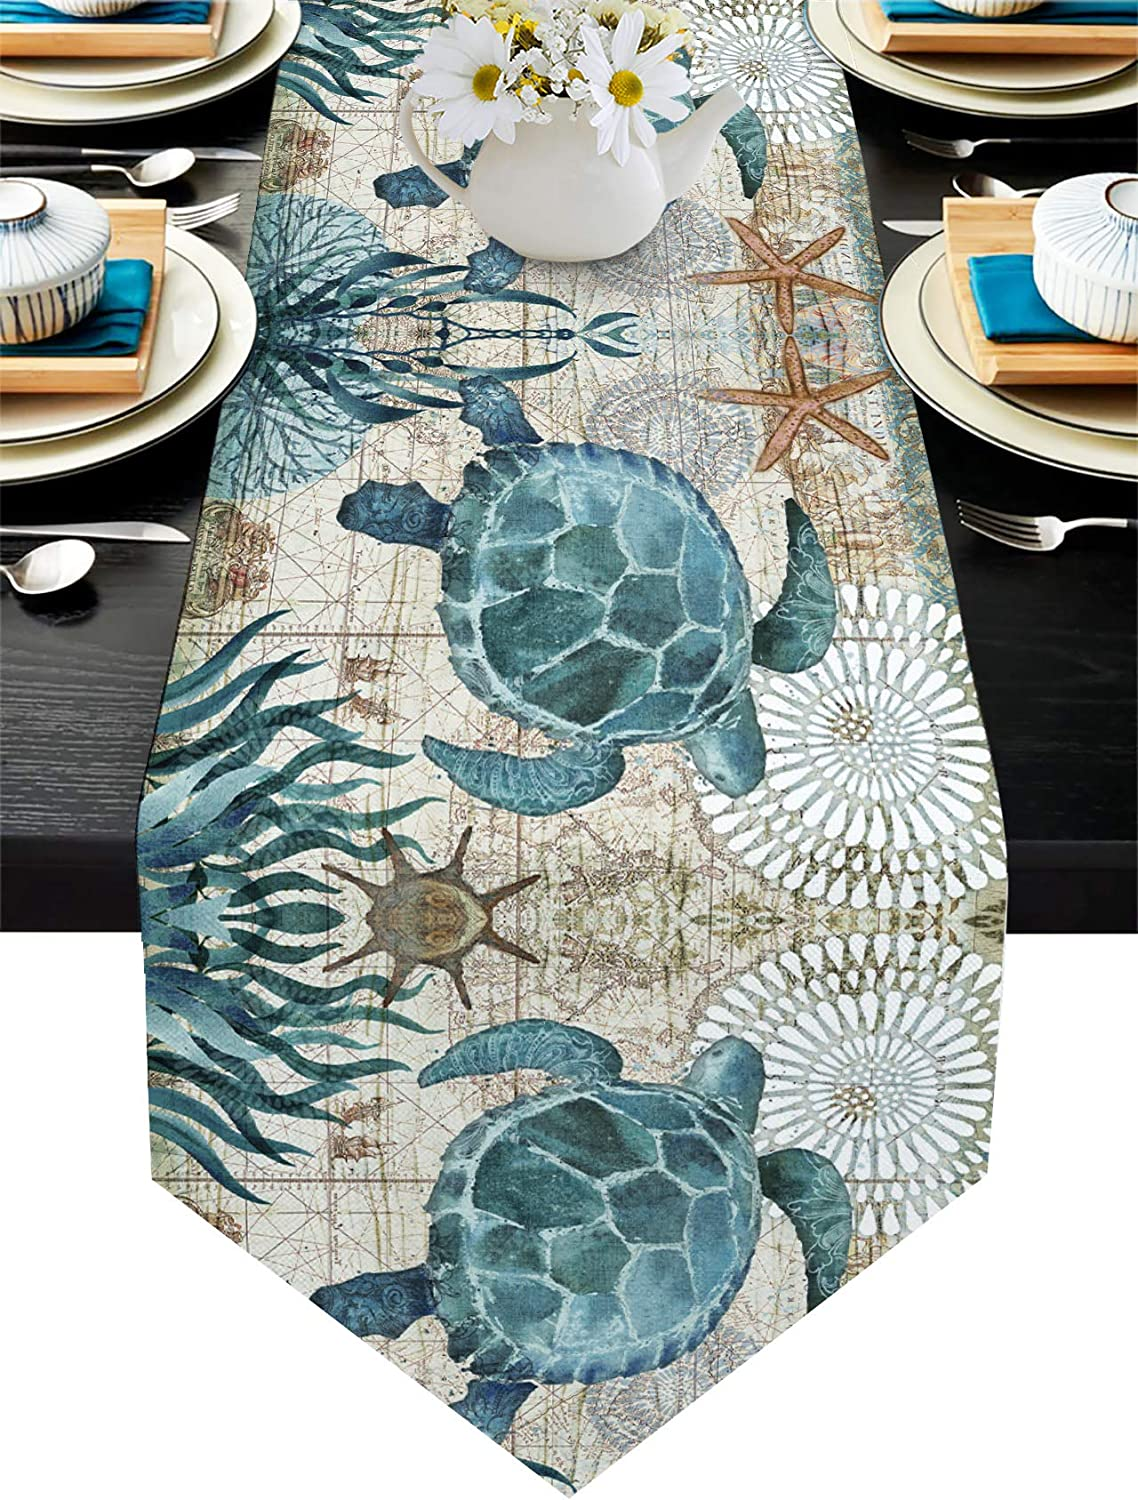 Cotton Linen Table Runner Dresser Scarves Sea Turtle Ocean Animal Nautical Themed Retro Non-Slip Table Settings Decor for Farmhouse Kitchen Home Dining ,Wedding,Holiday Indoor/Outdoor 14x72 inch,